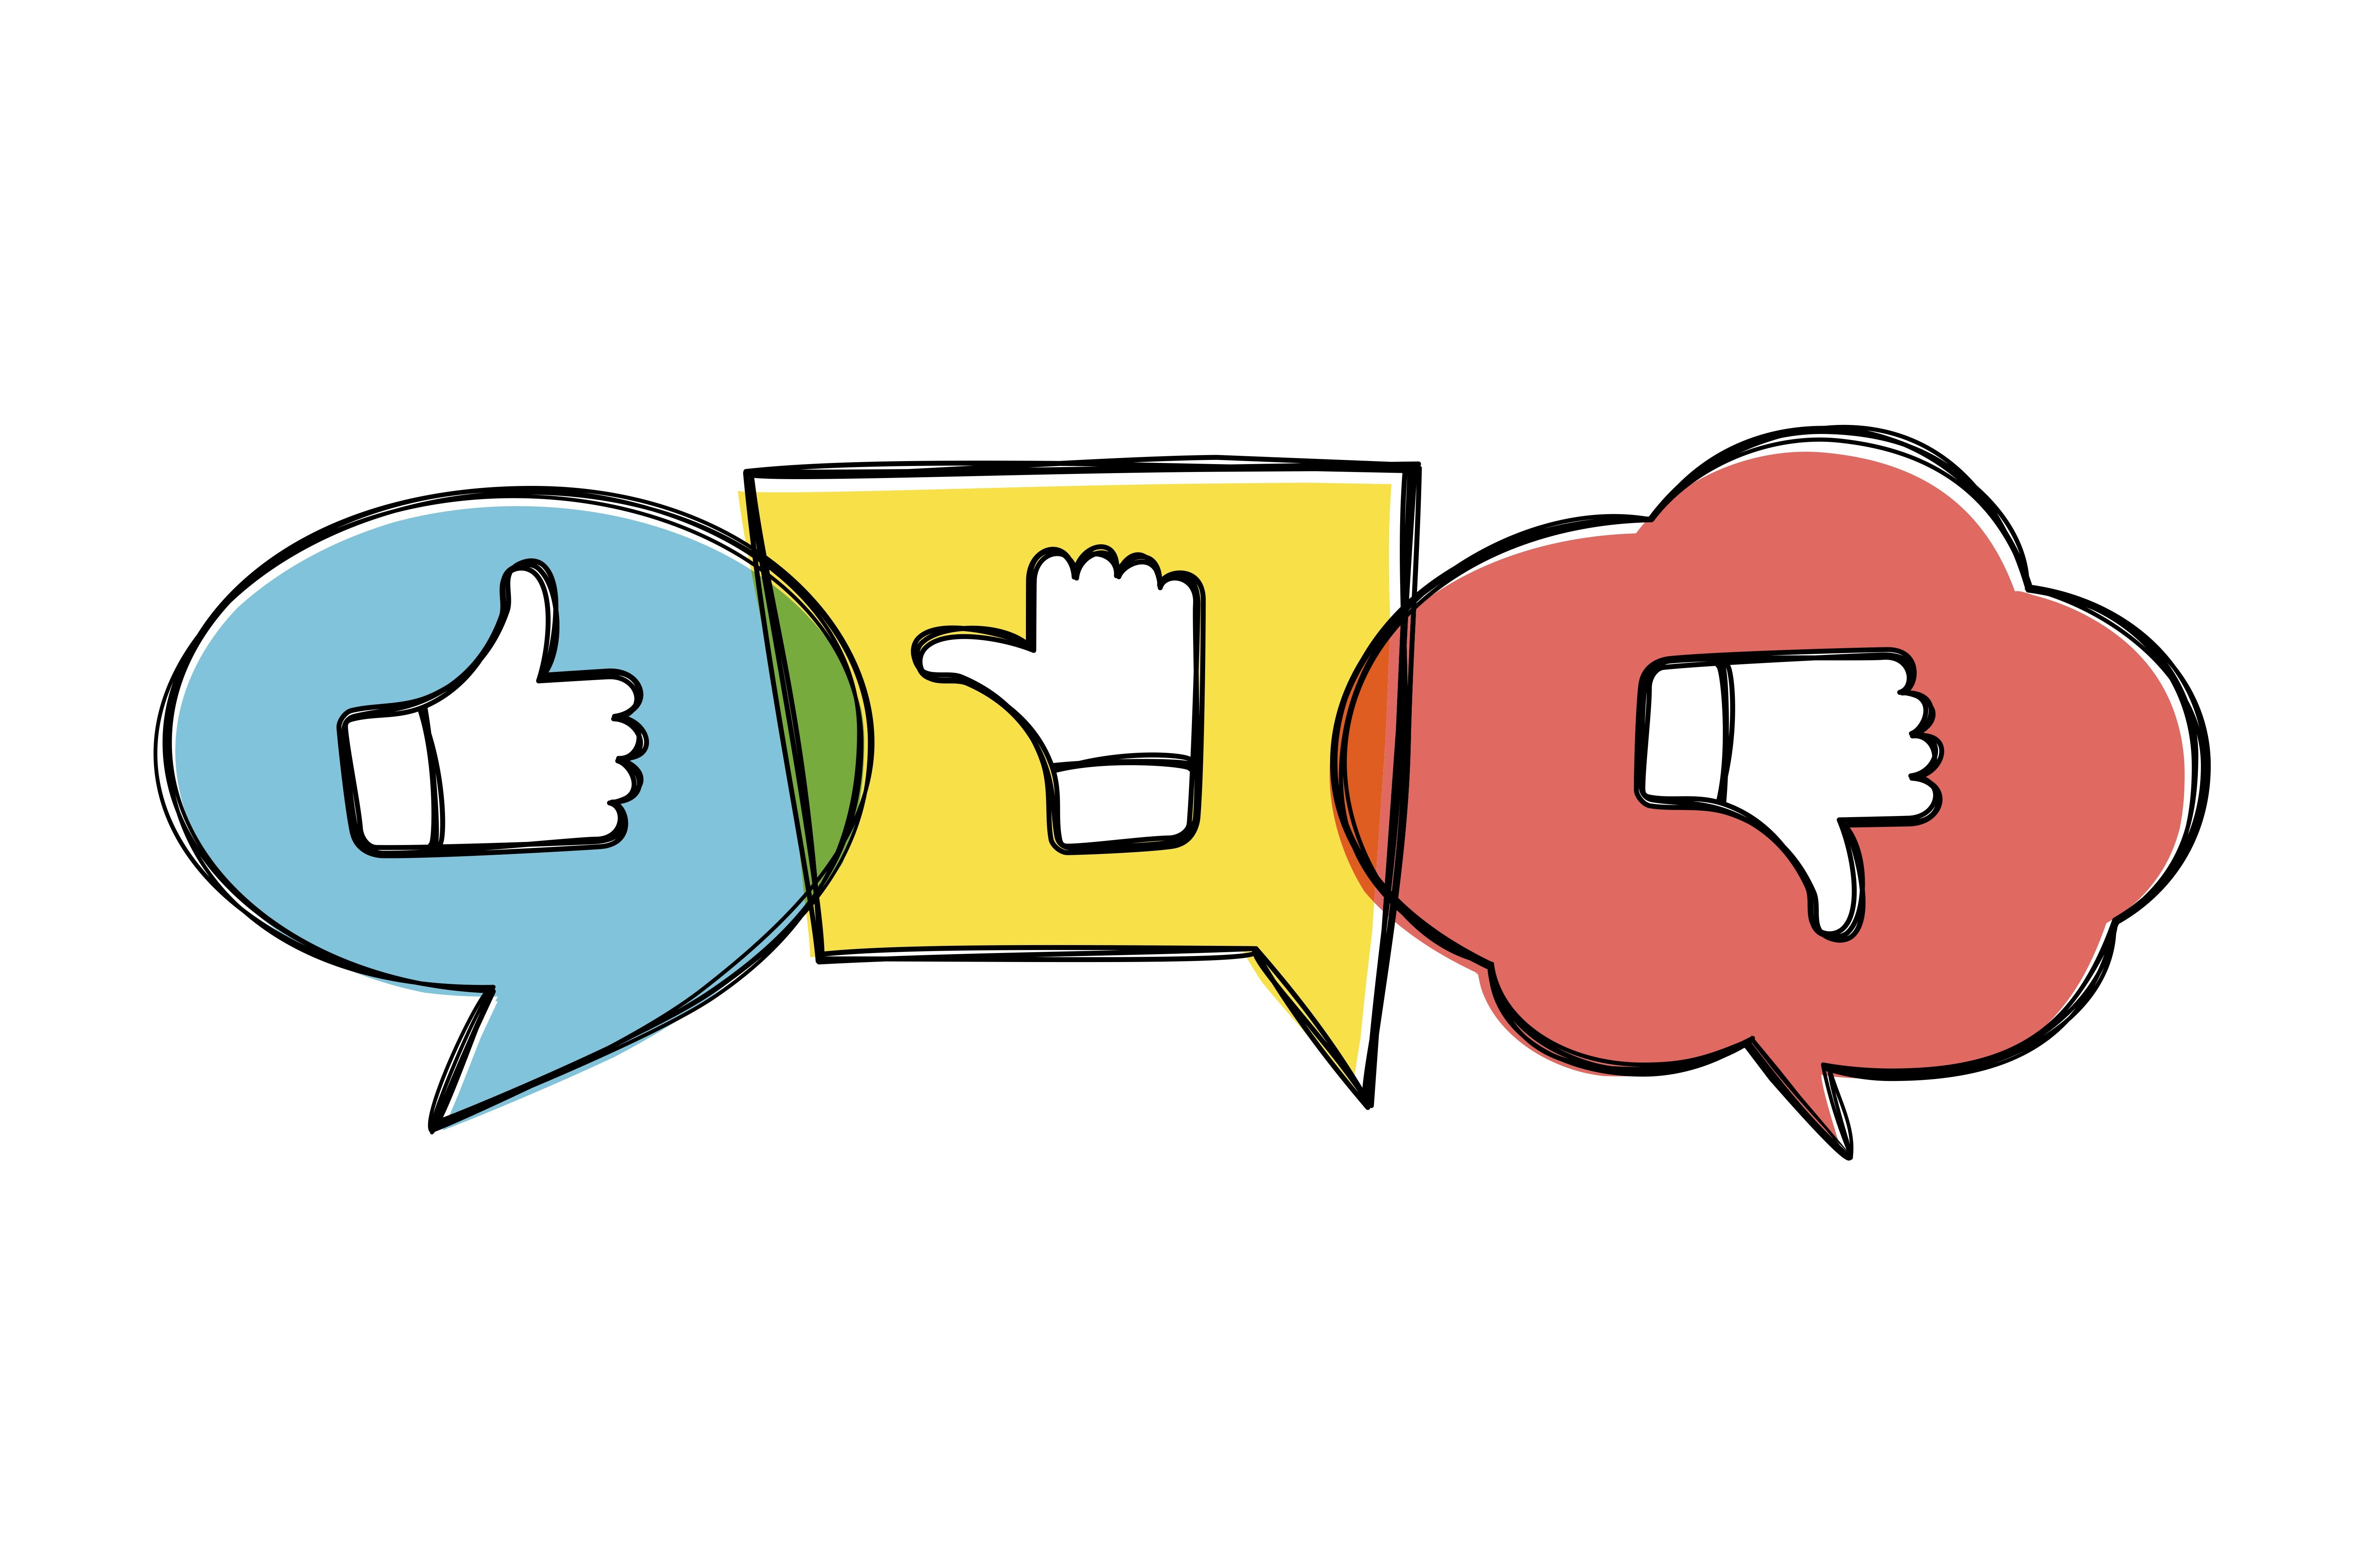 Hand drawn green, red and yellow speech bubbles with thumbs up and down. Like, dislike and undecided icons in sketchy style. Pointing gesture hands. Feedback concept. Credit:Mashot